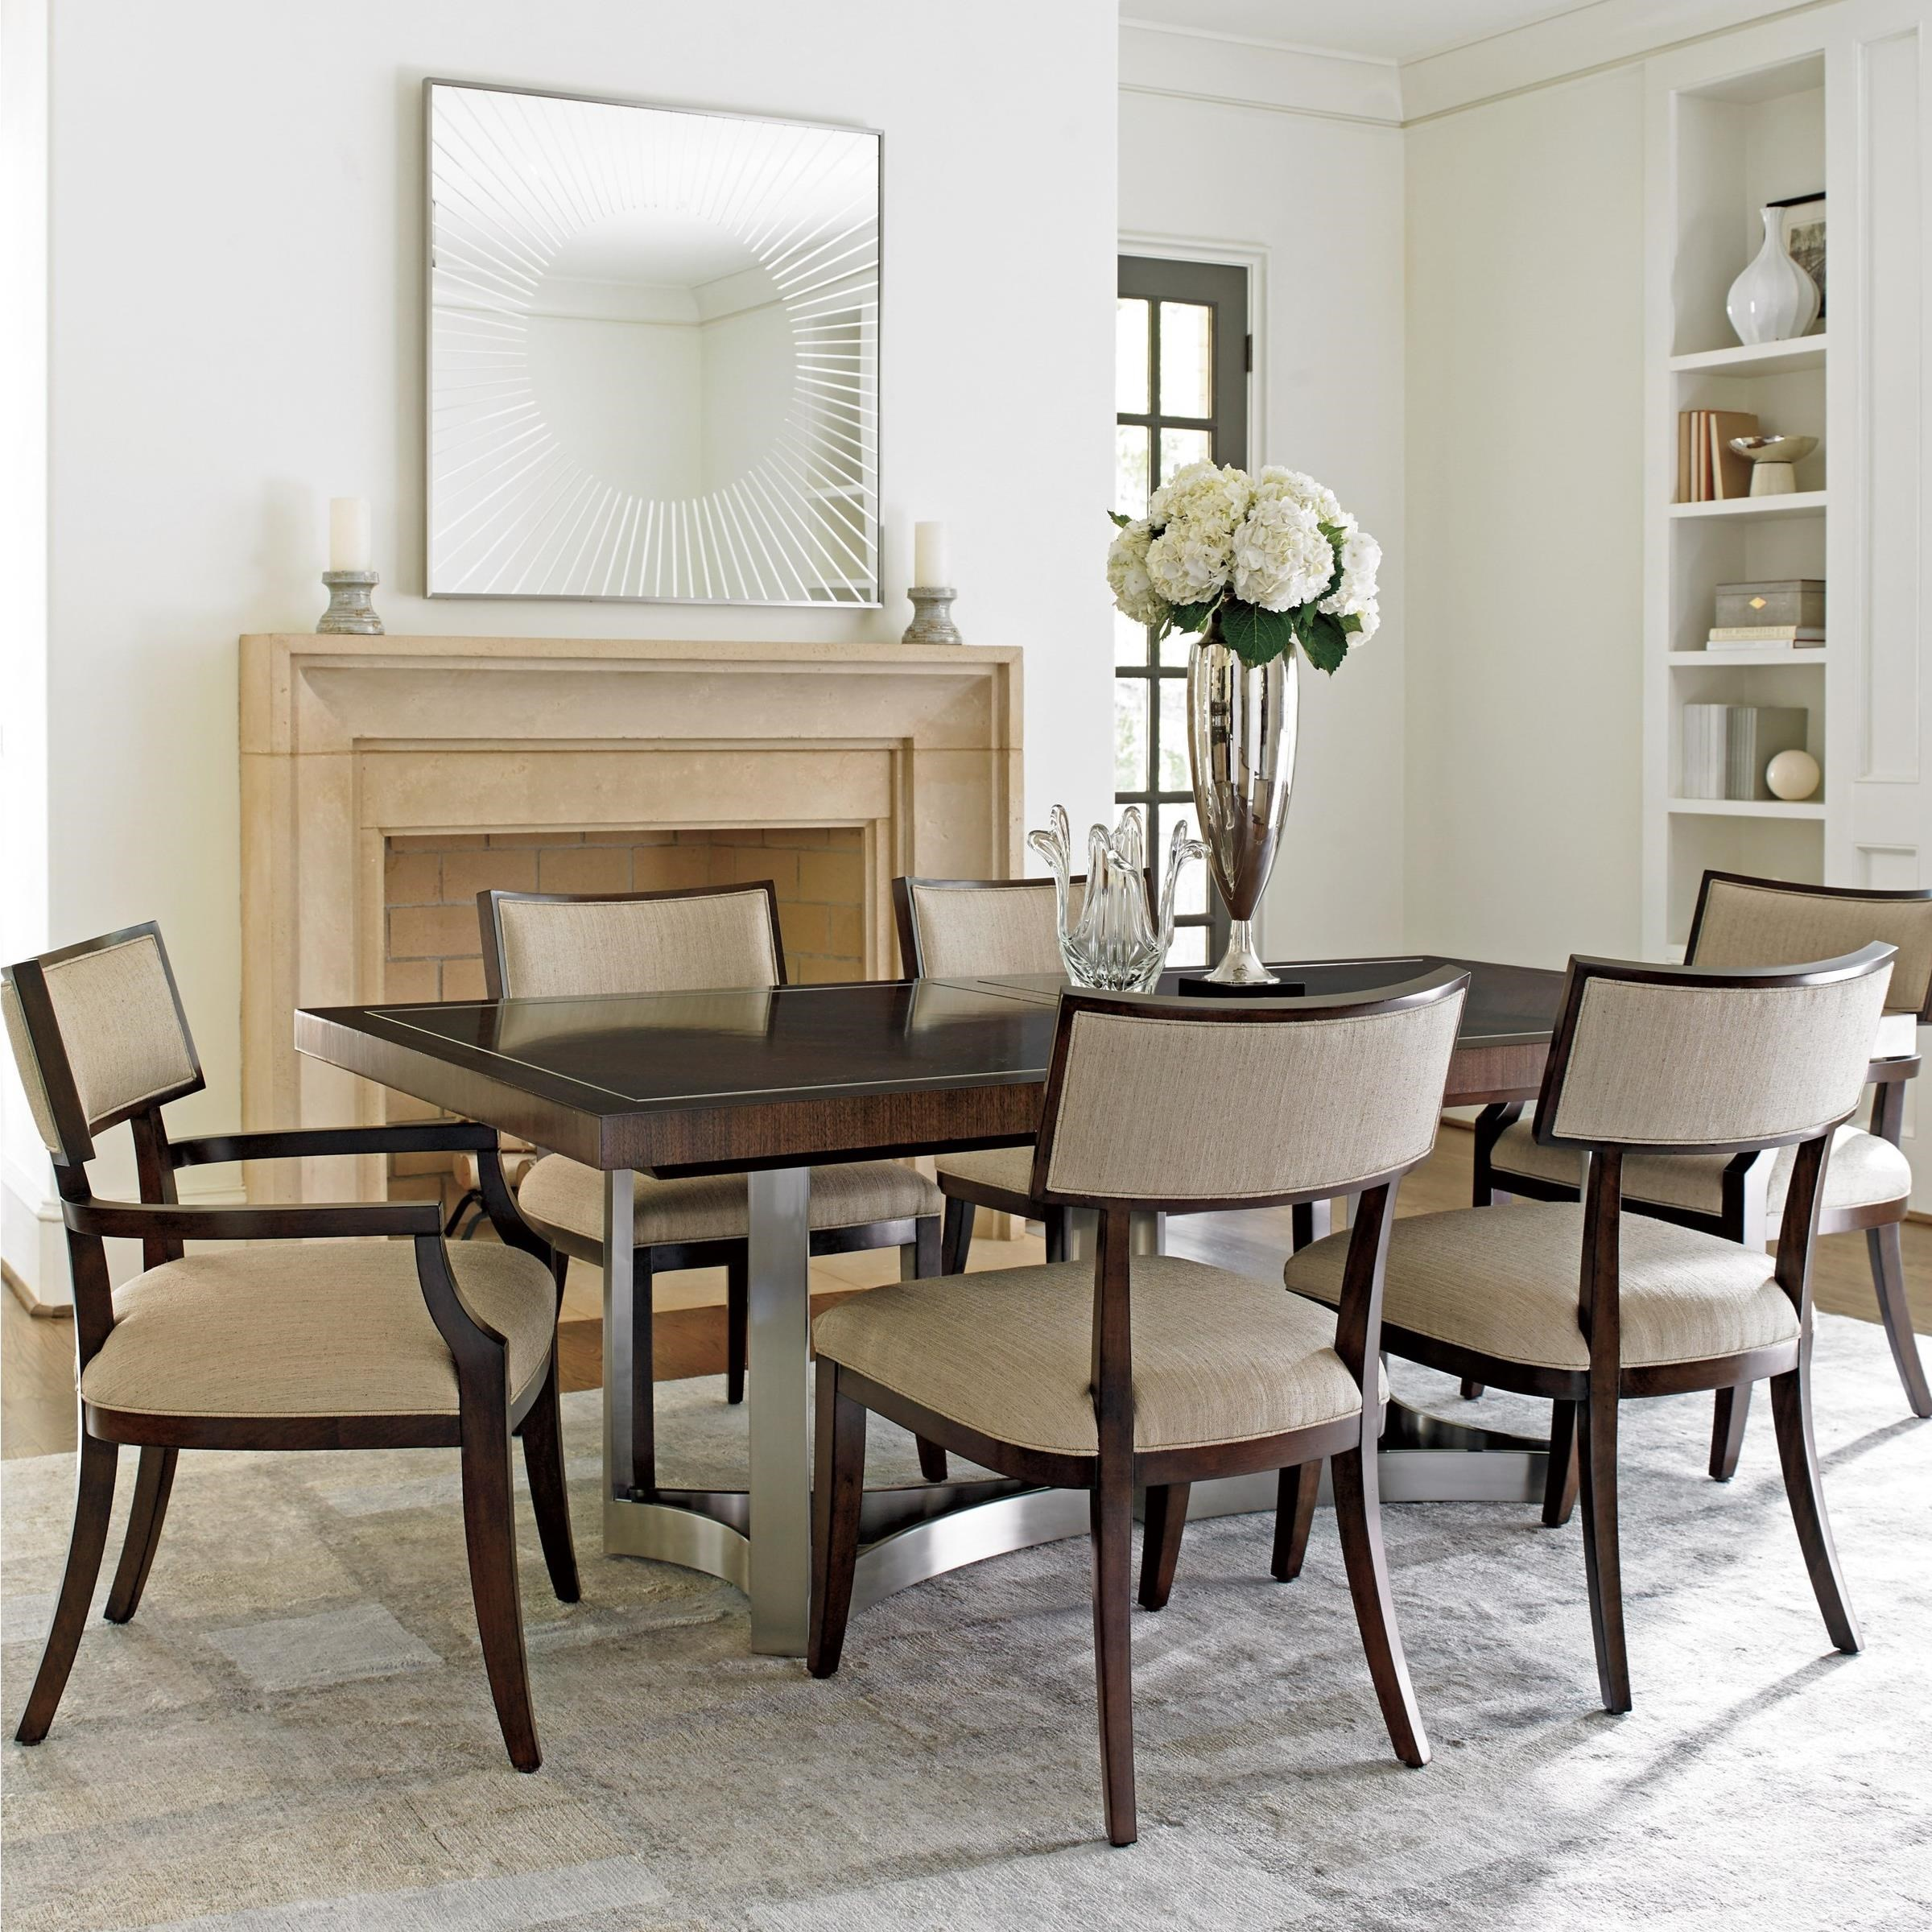 MacArthur Park 7 Pc Beverly Place Dining Set by Lexington at Baer's Furniture